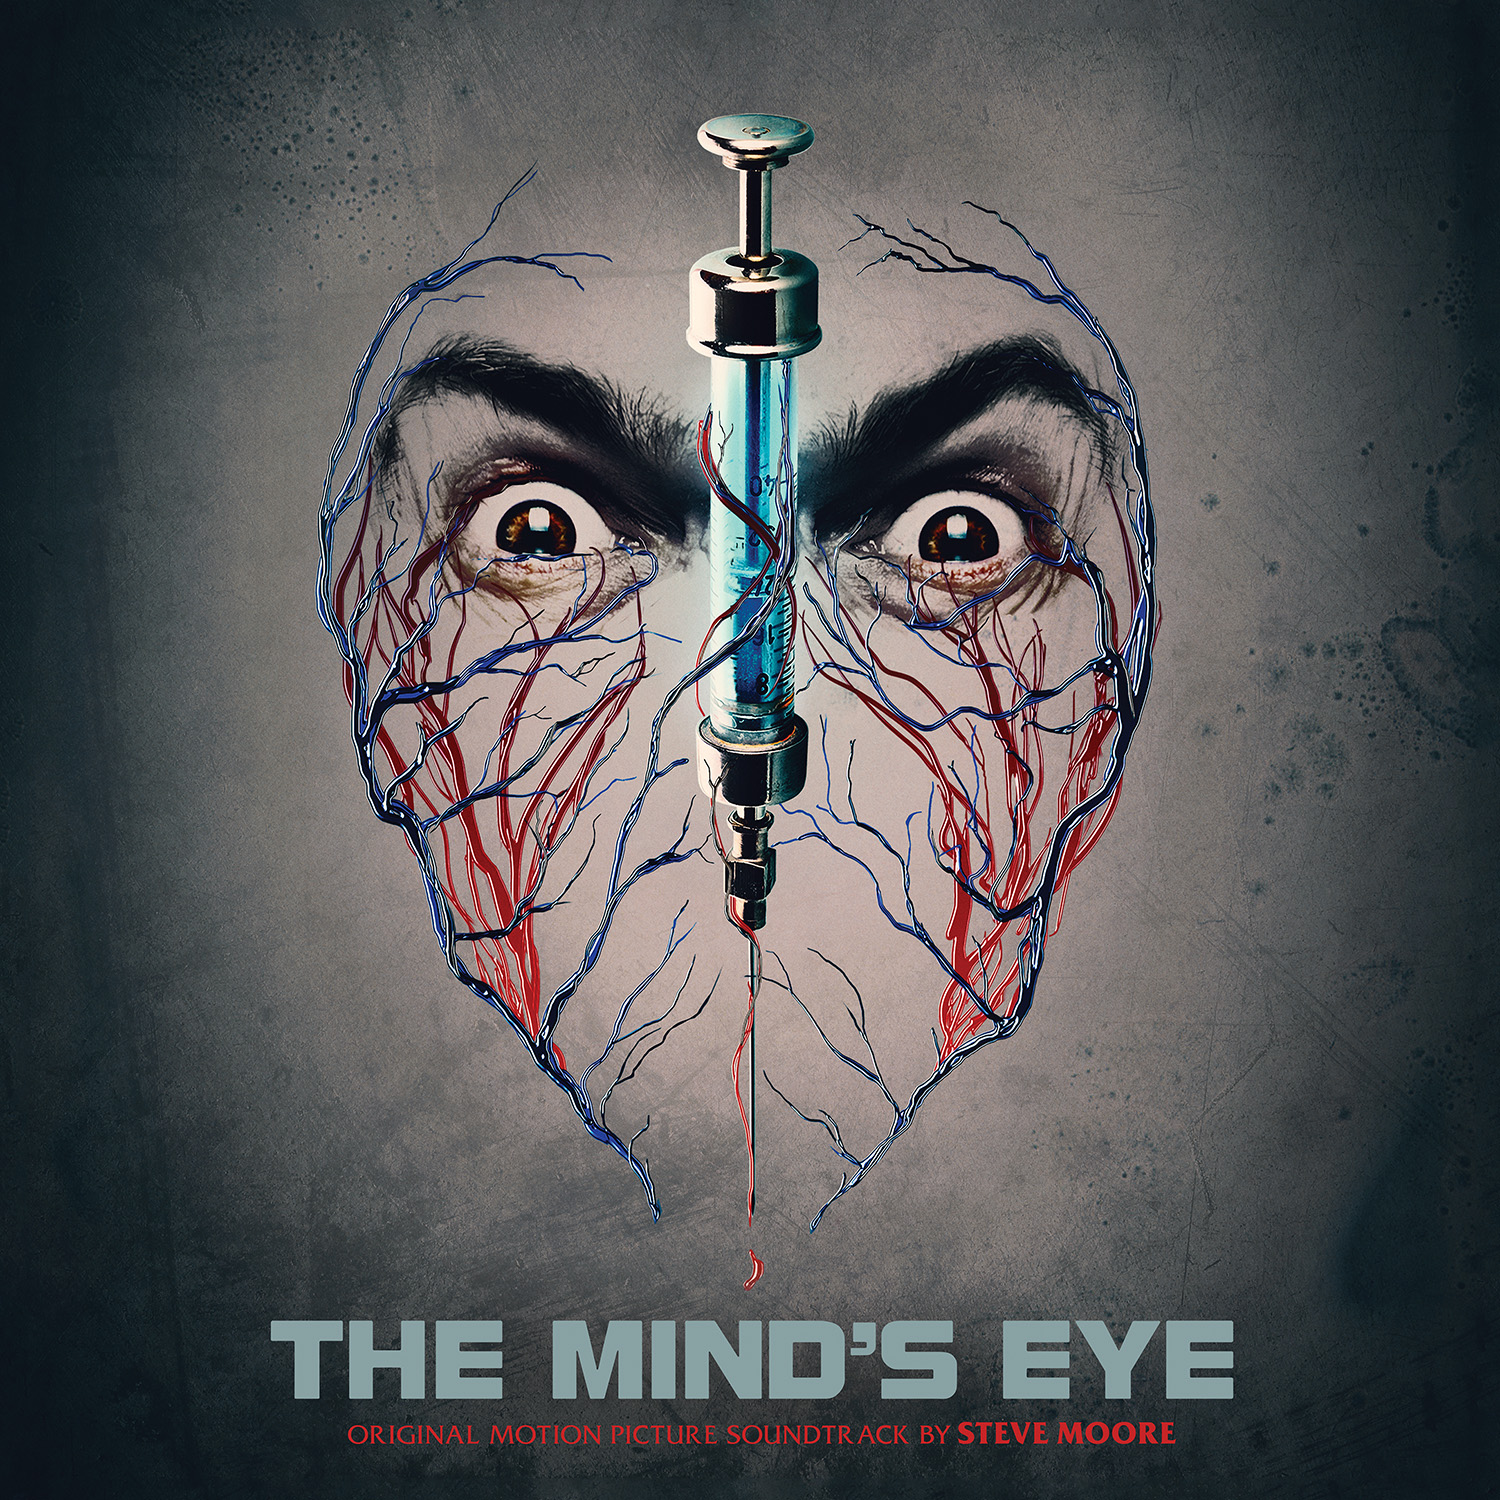 STEVE MOORE The Mind's Eye (Original Motion Picture Soundtrack) - Vinyl 2xLP (black)